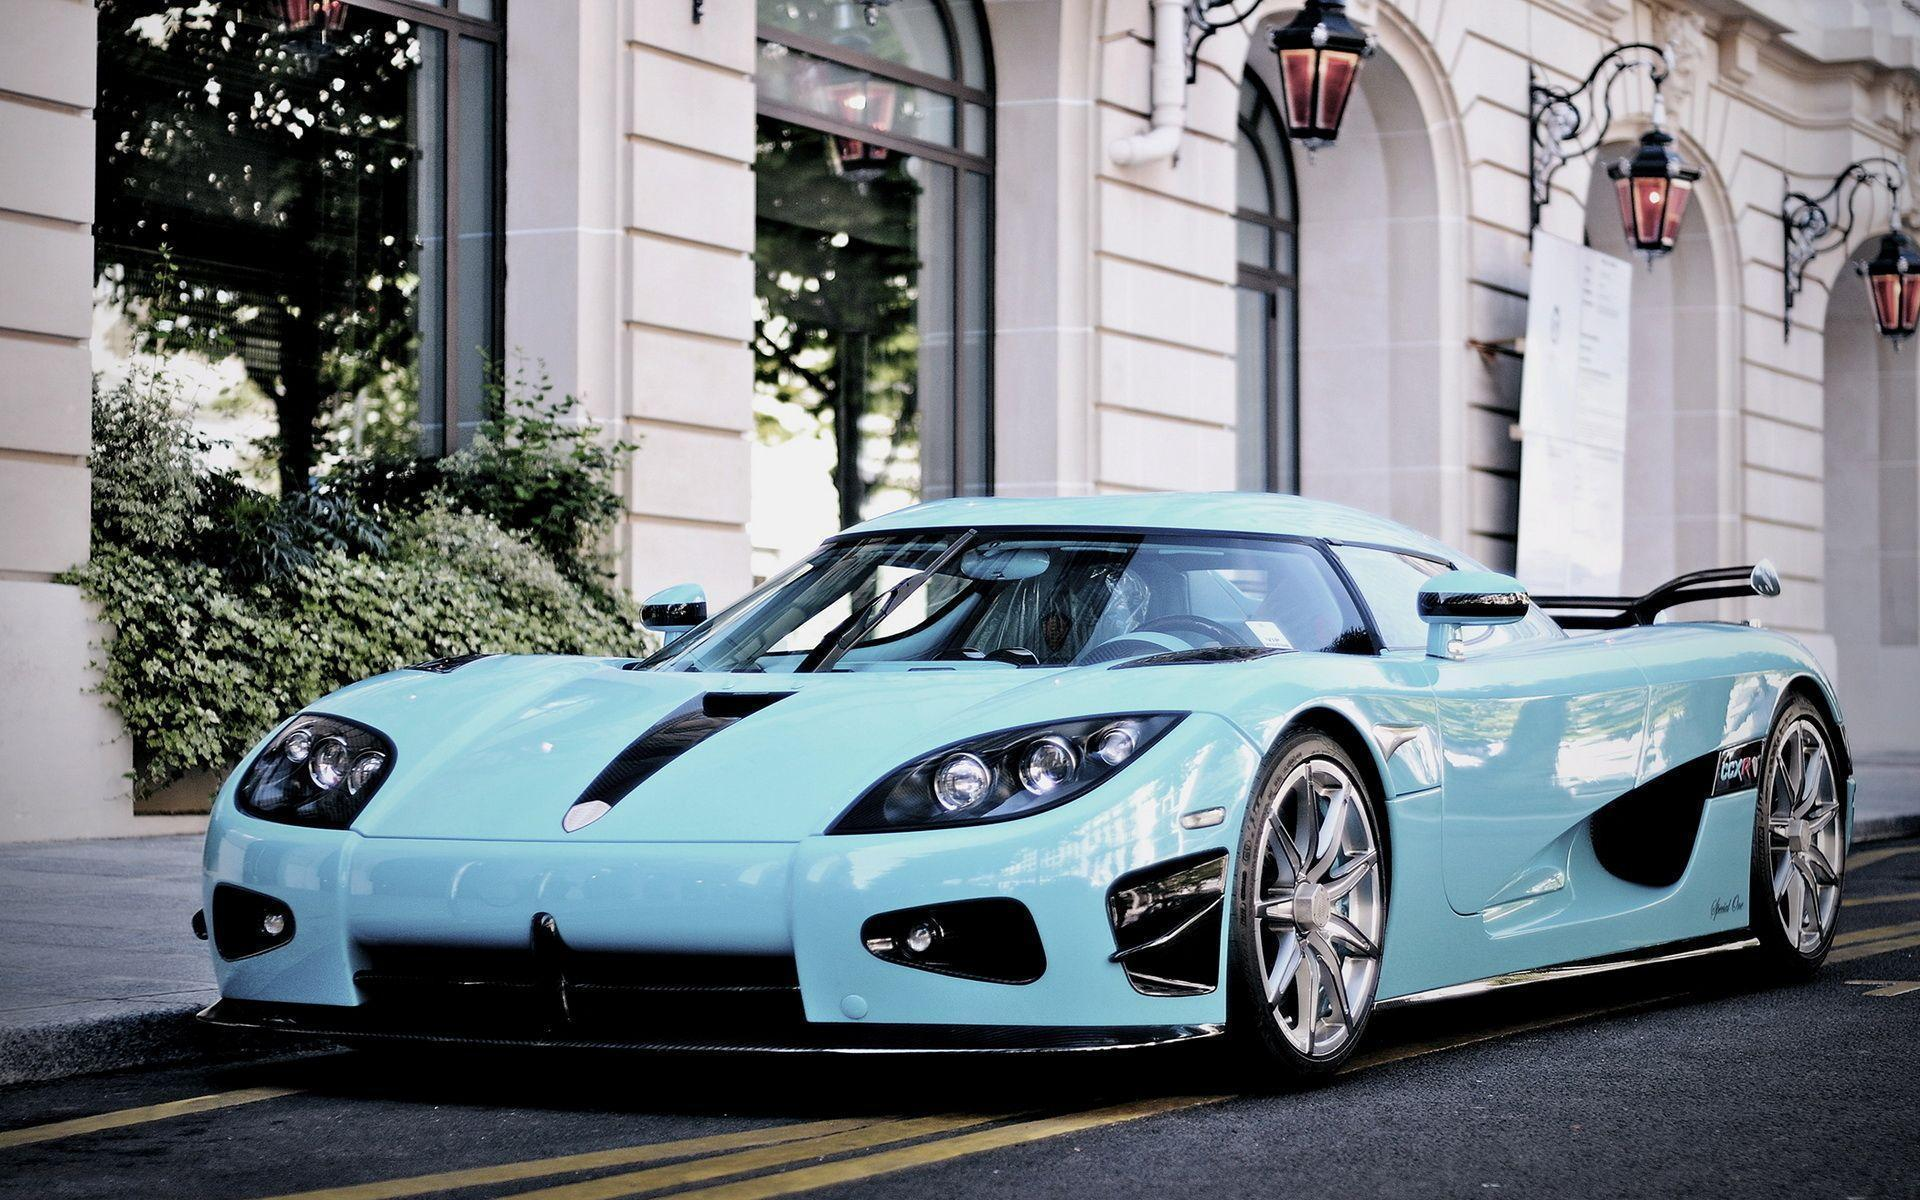 10 Koenigsegg Agera R HD Wallpapers | Backgrounds - Wallpaper Abyss